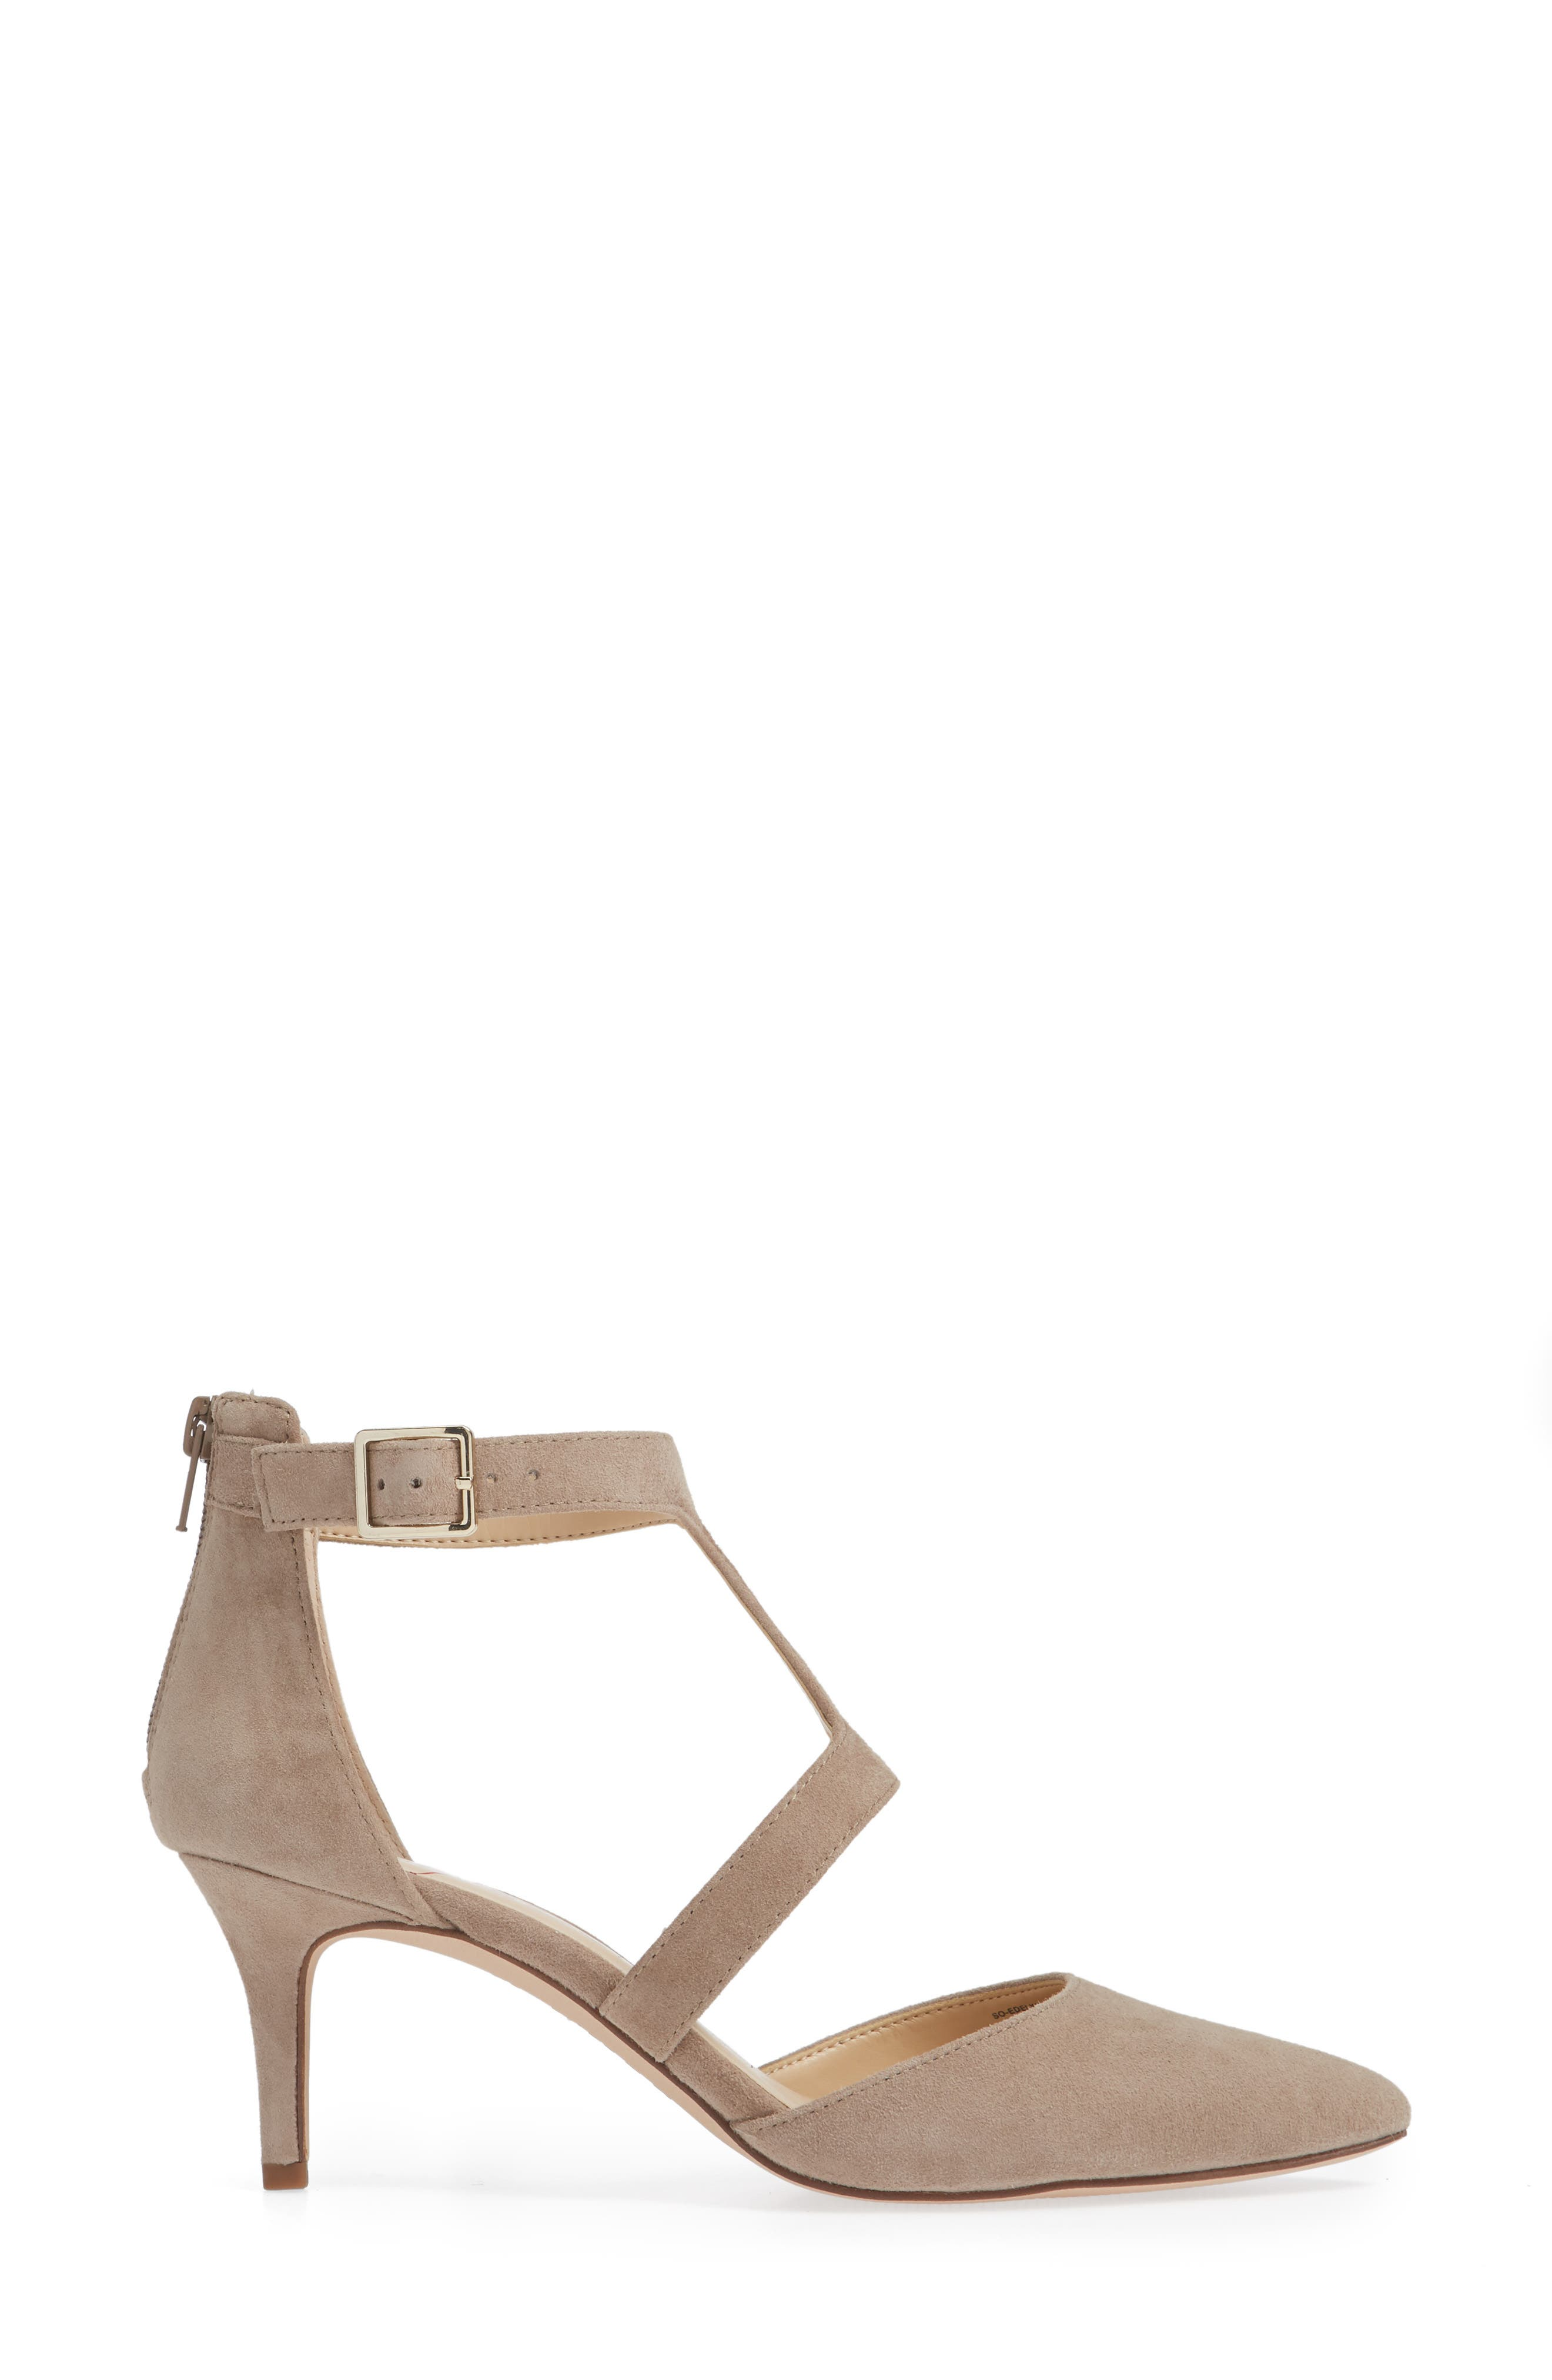 SOLE SOCIETY, Edelyn Pump, Alternate thumbnail 3, color, FALL TAUPE SUEDE